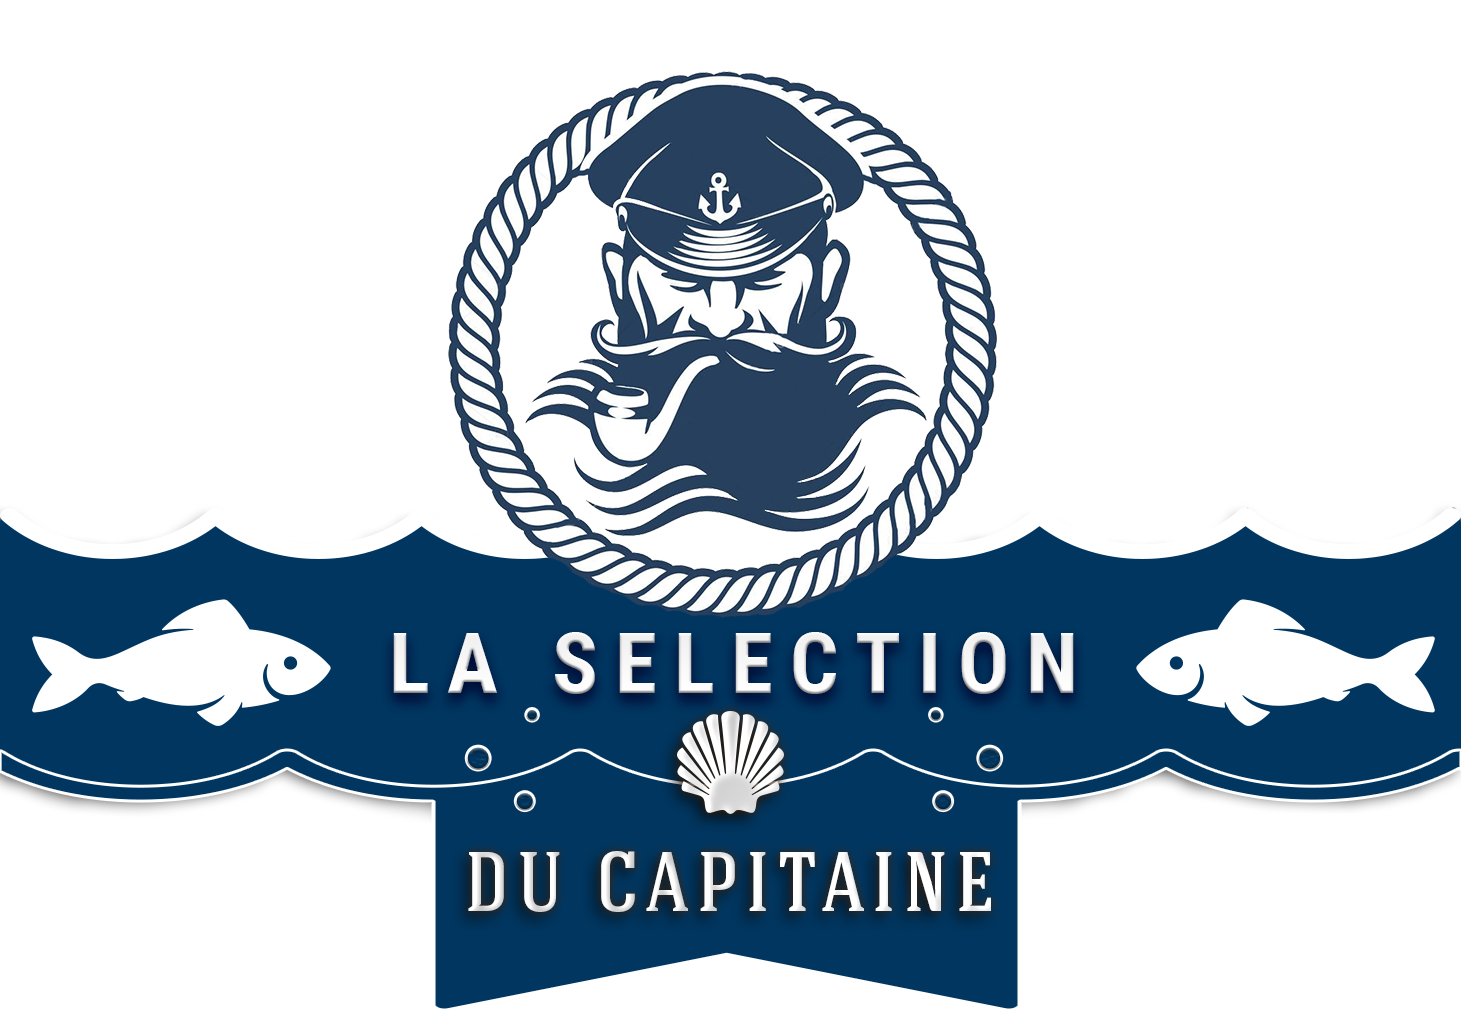 LA SELECTION DU CAPITAINE